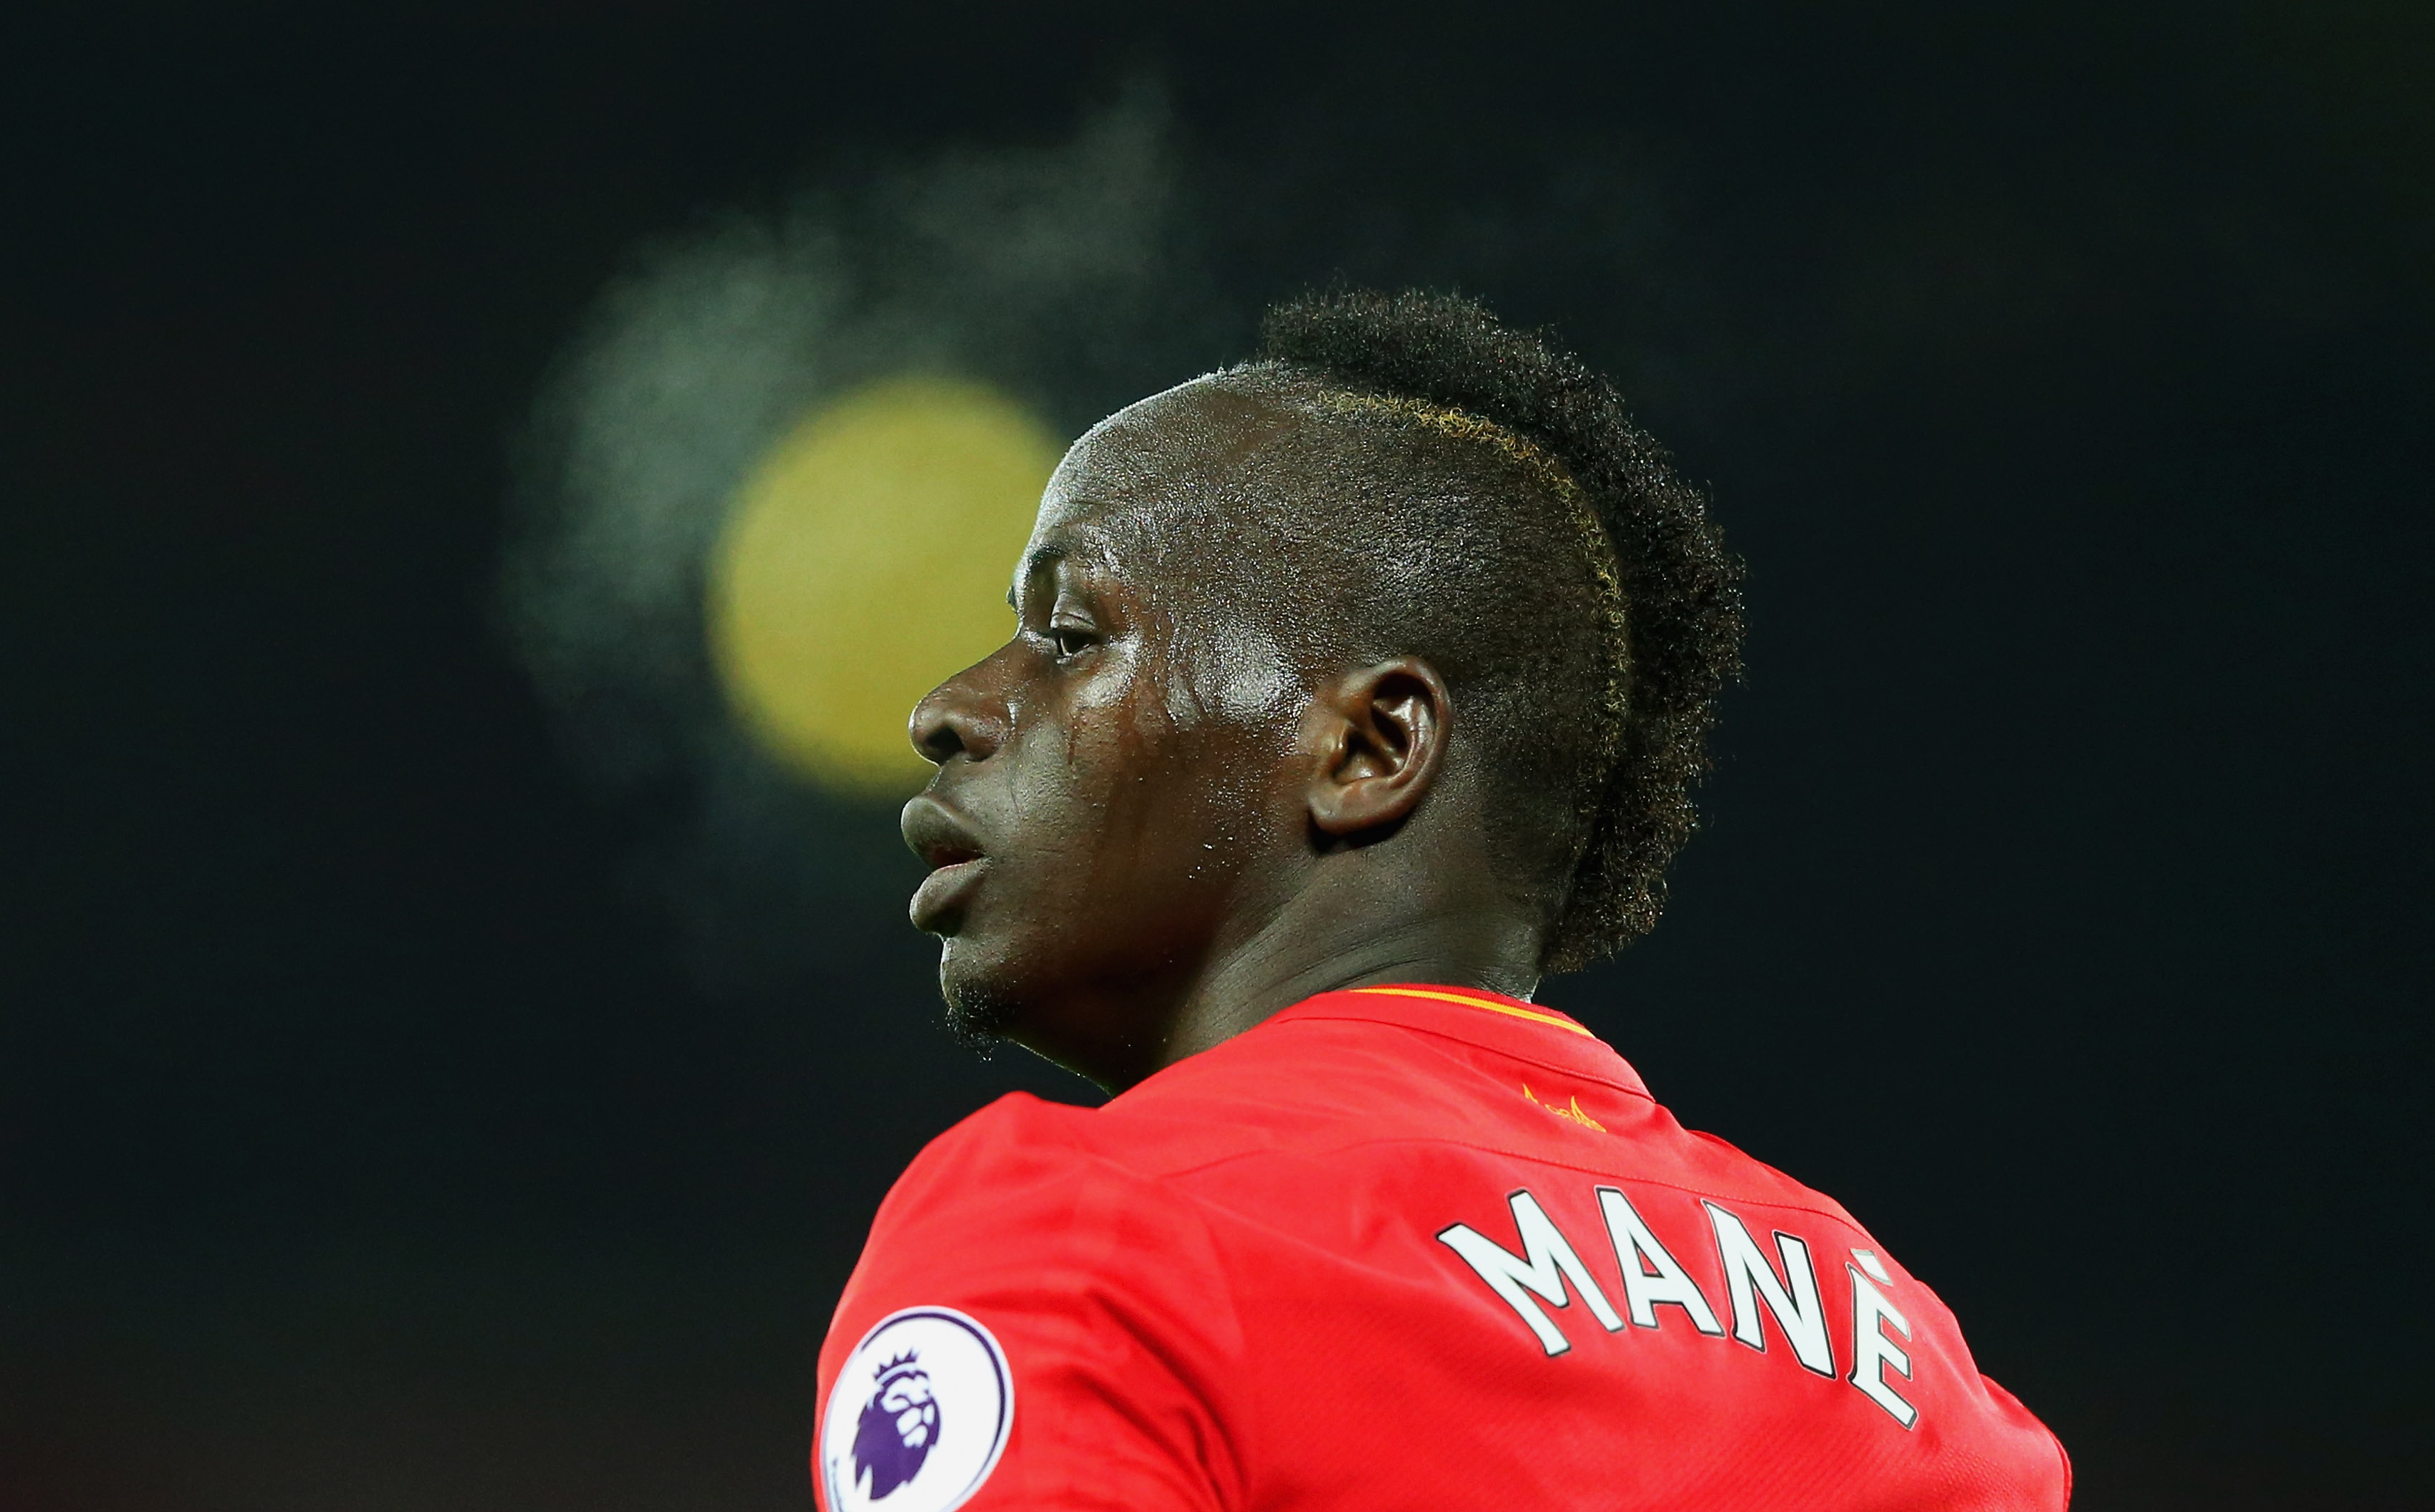 LIVERPOOL, ENGLAND - DECEMBER 27:  Sadio Mane of Liverpool looks on during the Premier League match between Liverpool and Stoke City at Anfield on December 27, 2016 in Liverpool, England.  (Photo by Alex Livesey/Getty Images)